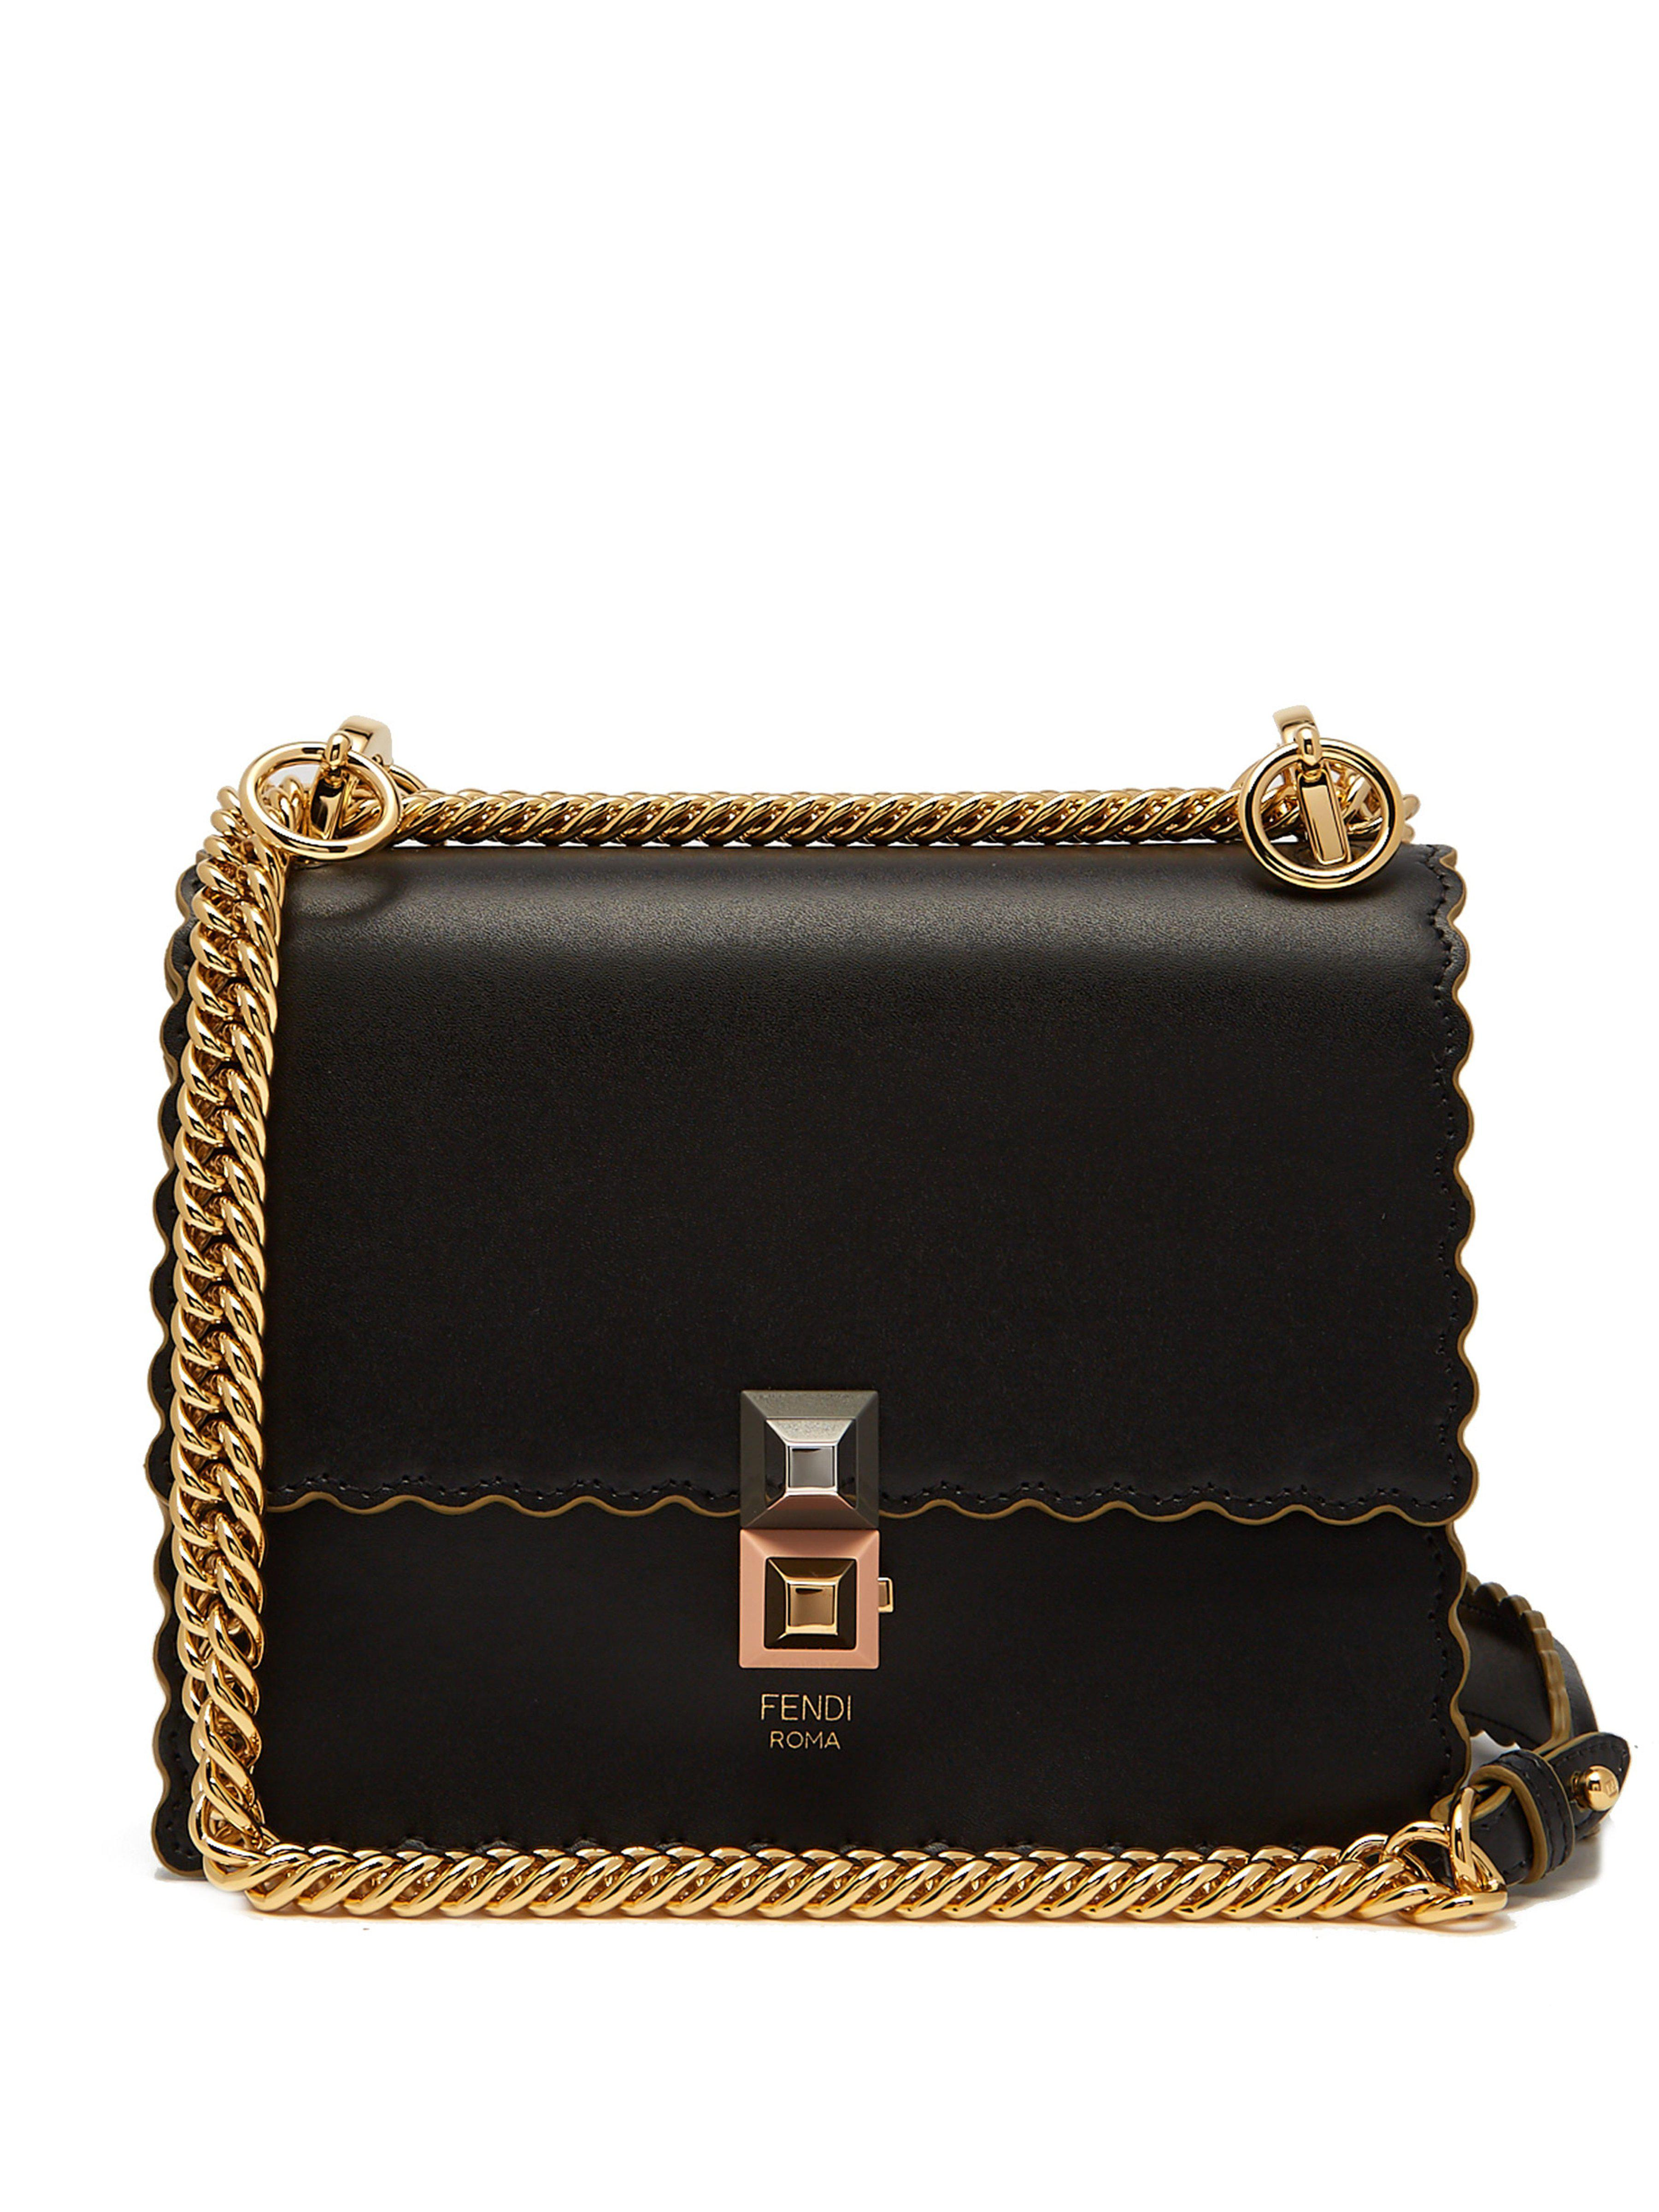 675bac31f5d0 Fendi Kan I Small Leather Cross Body Bag in Black - Lyst